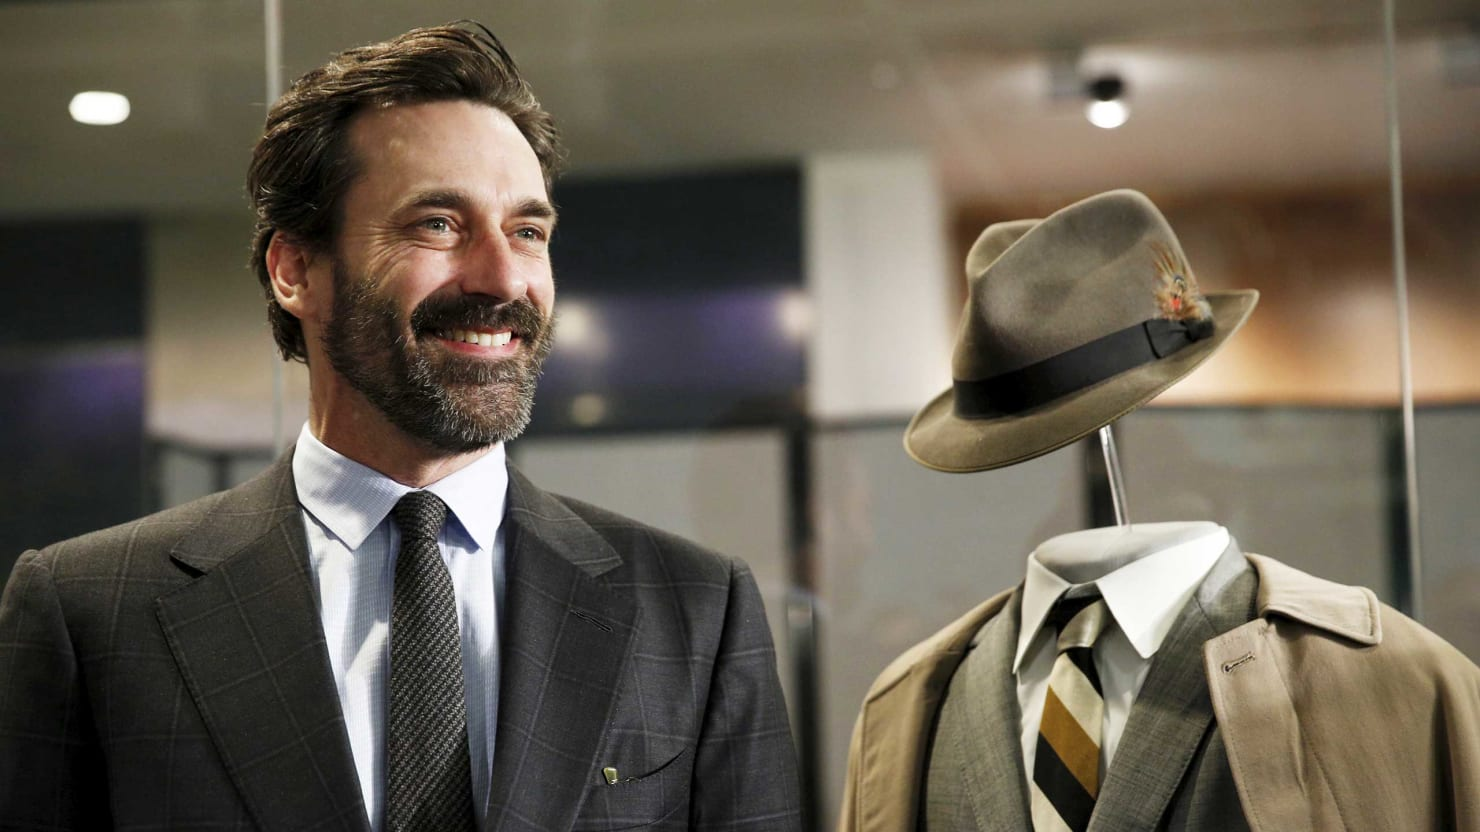 Jon Hamm Hangs Up Don Draper's Suit, Reflects on the Deepest, Darkest Role of His Career